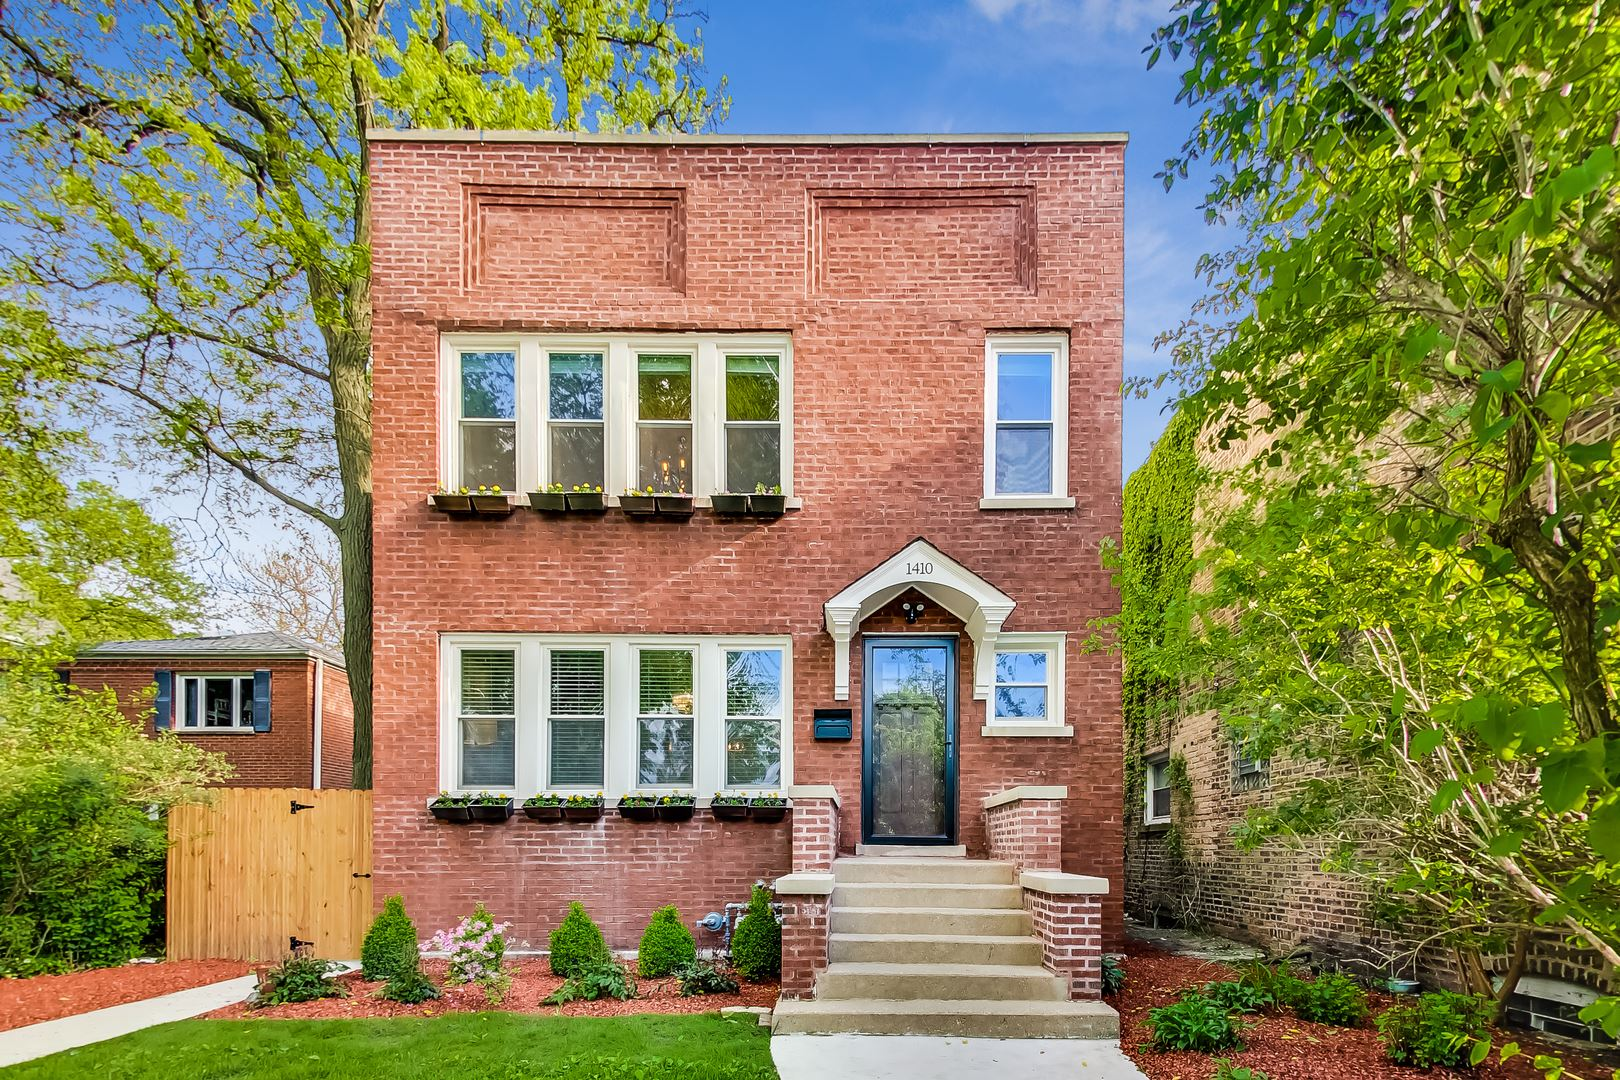 Photo for 1410 Washington Street, Evanston, IL 60202 (MLS # 10796524)